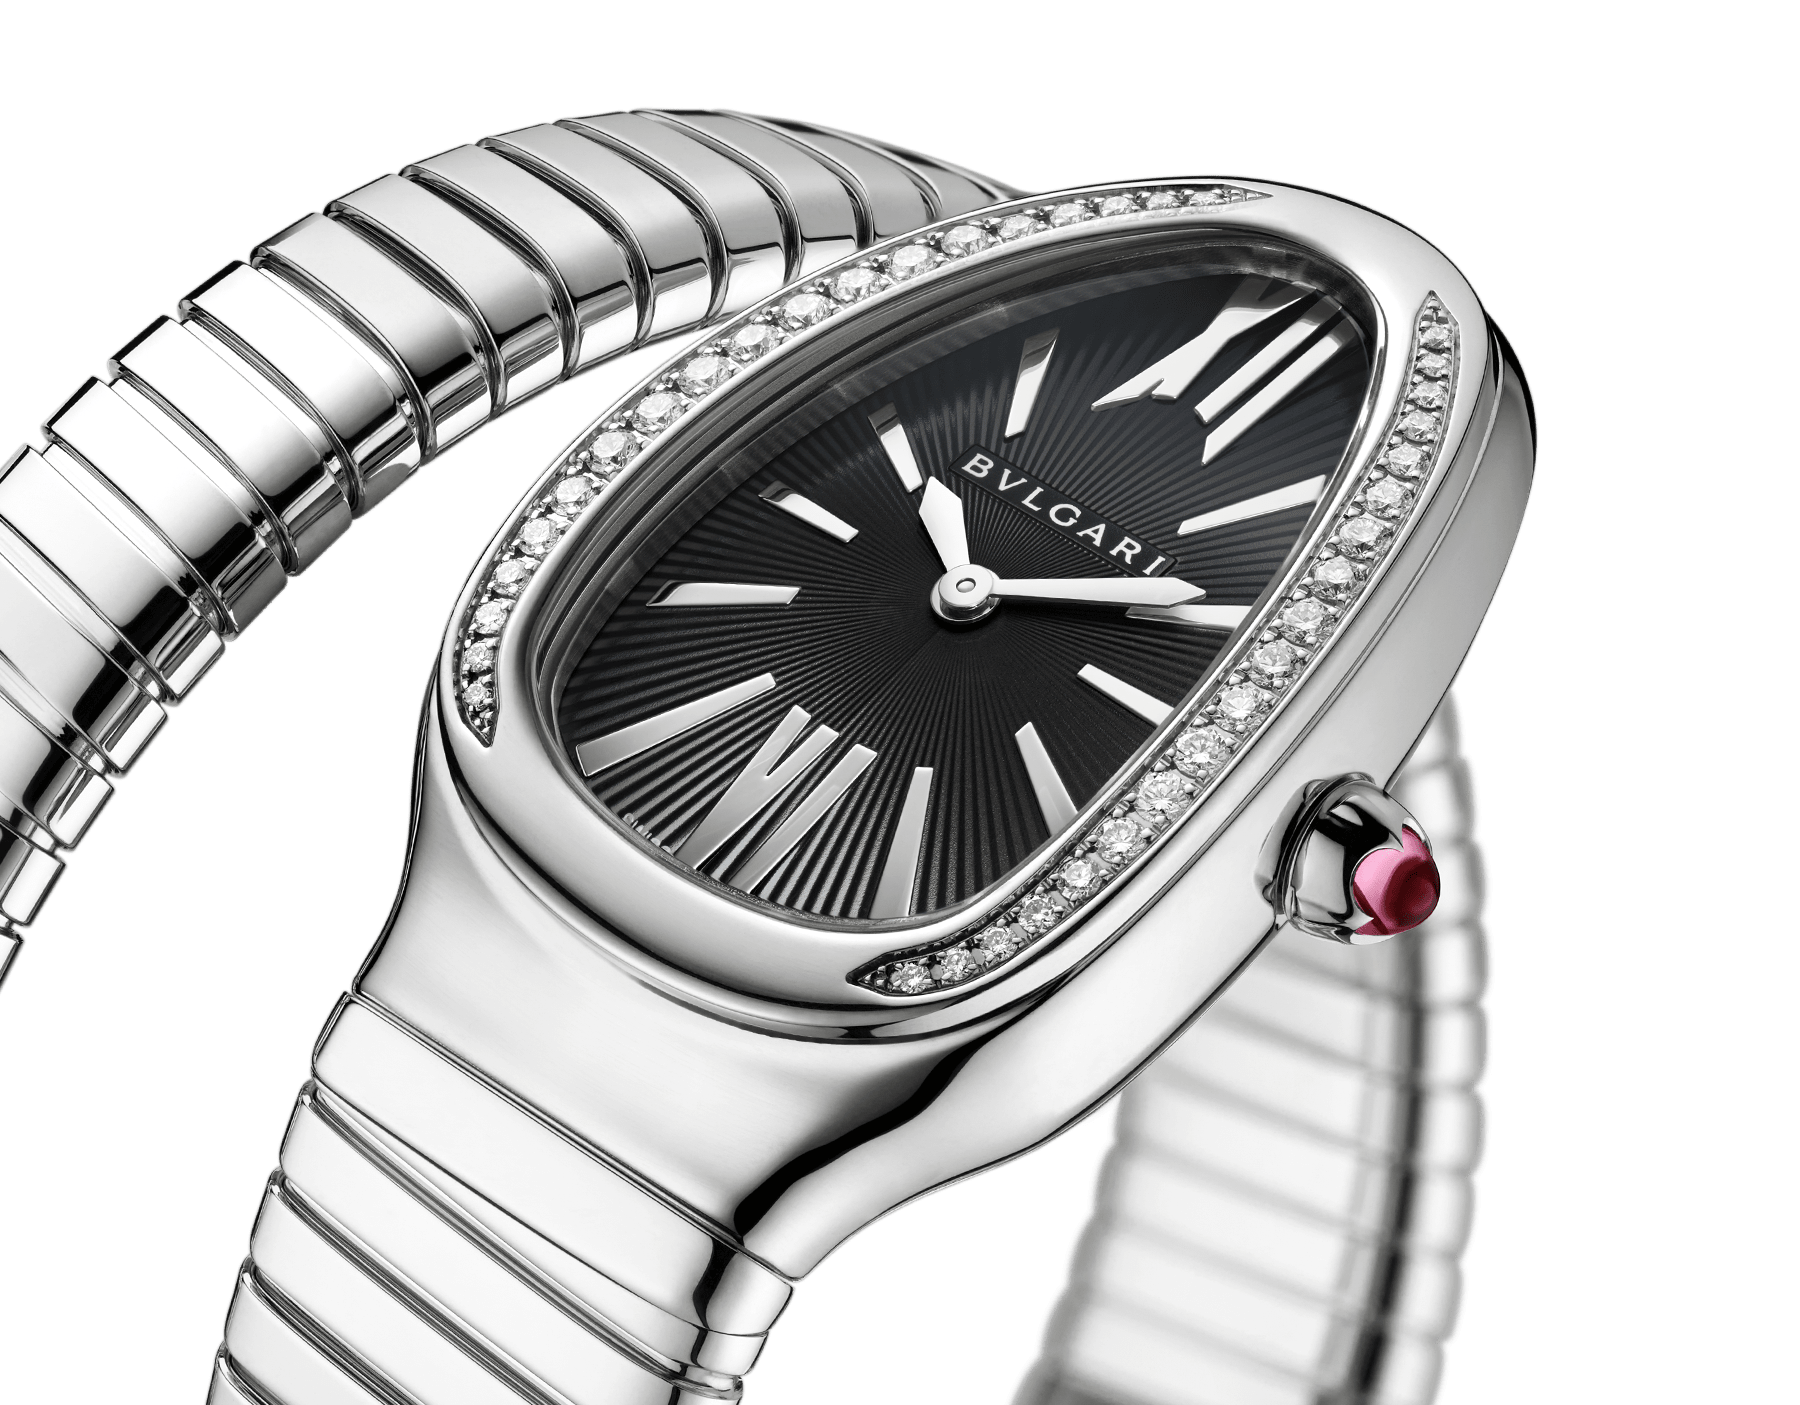 Serpenti Tubogas single spiral watch with stainless steel case and bracelet, bezel set with brilliant-cut diamonds and black dial with guilloché soleil treatment. Water-resistant up to 30 metres. Small size 103524 image 2